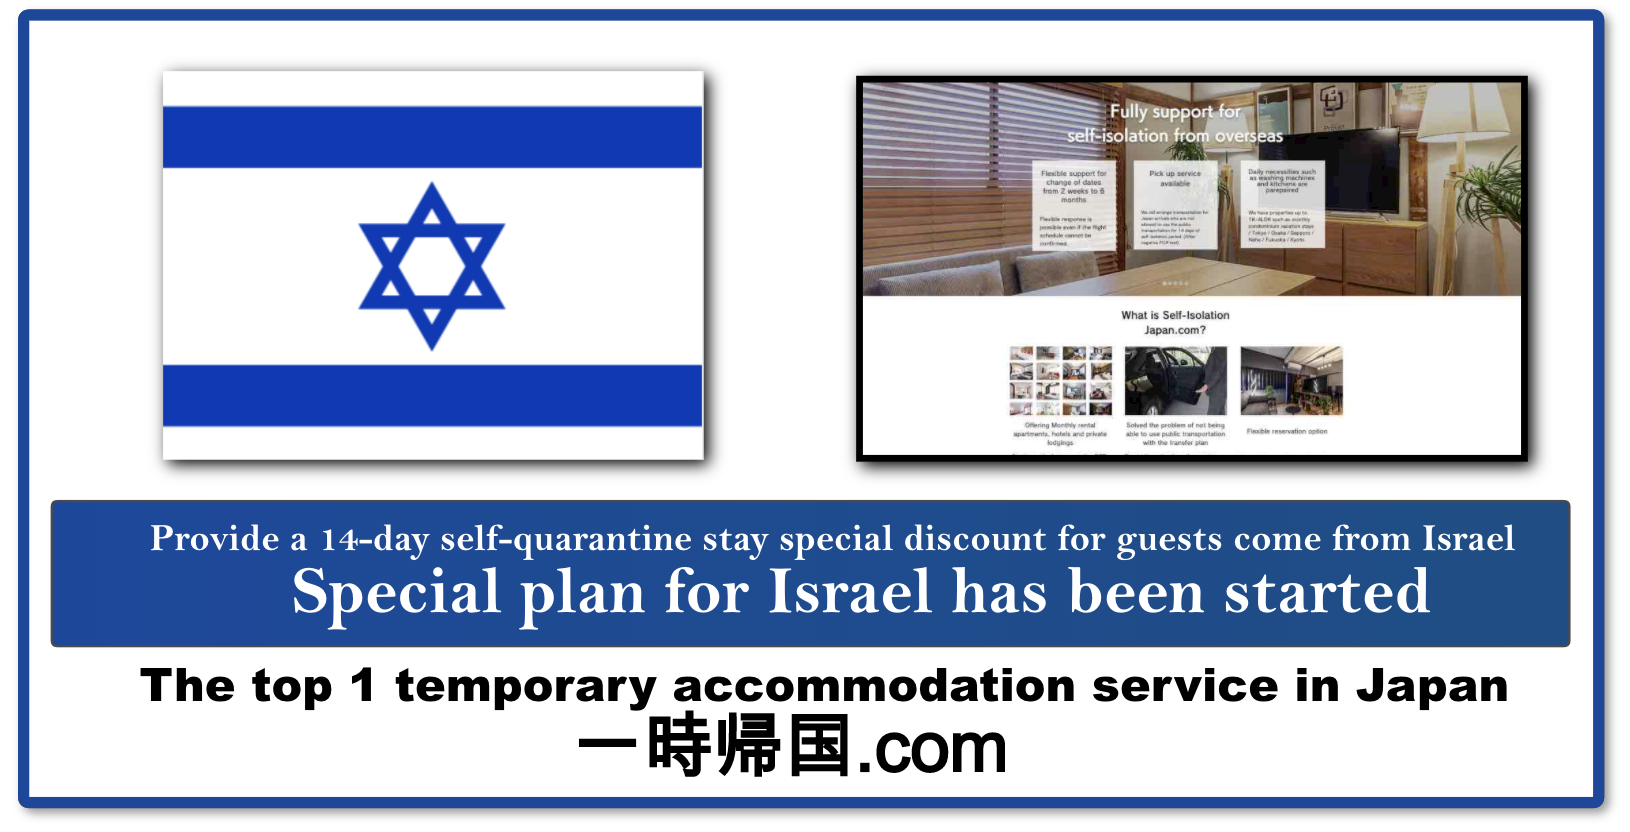 2weeks self-quarantine stay special discount for guests come from Israel.